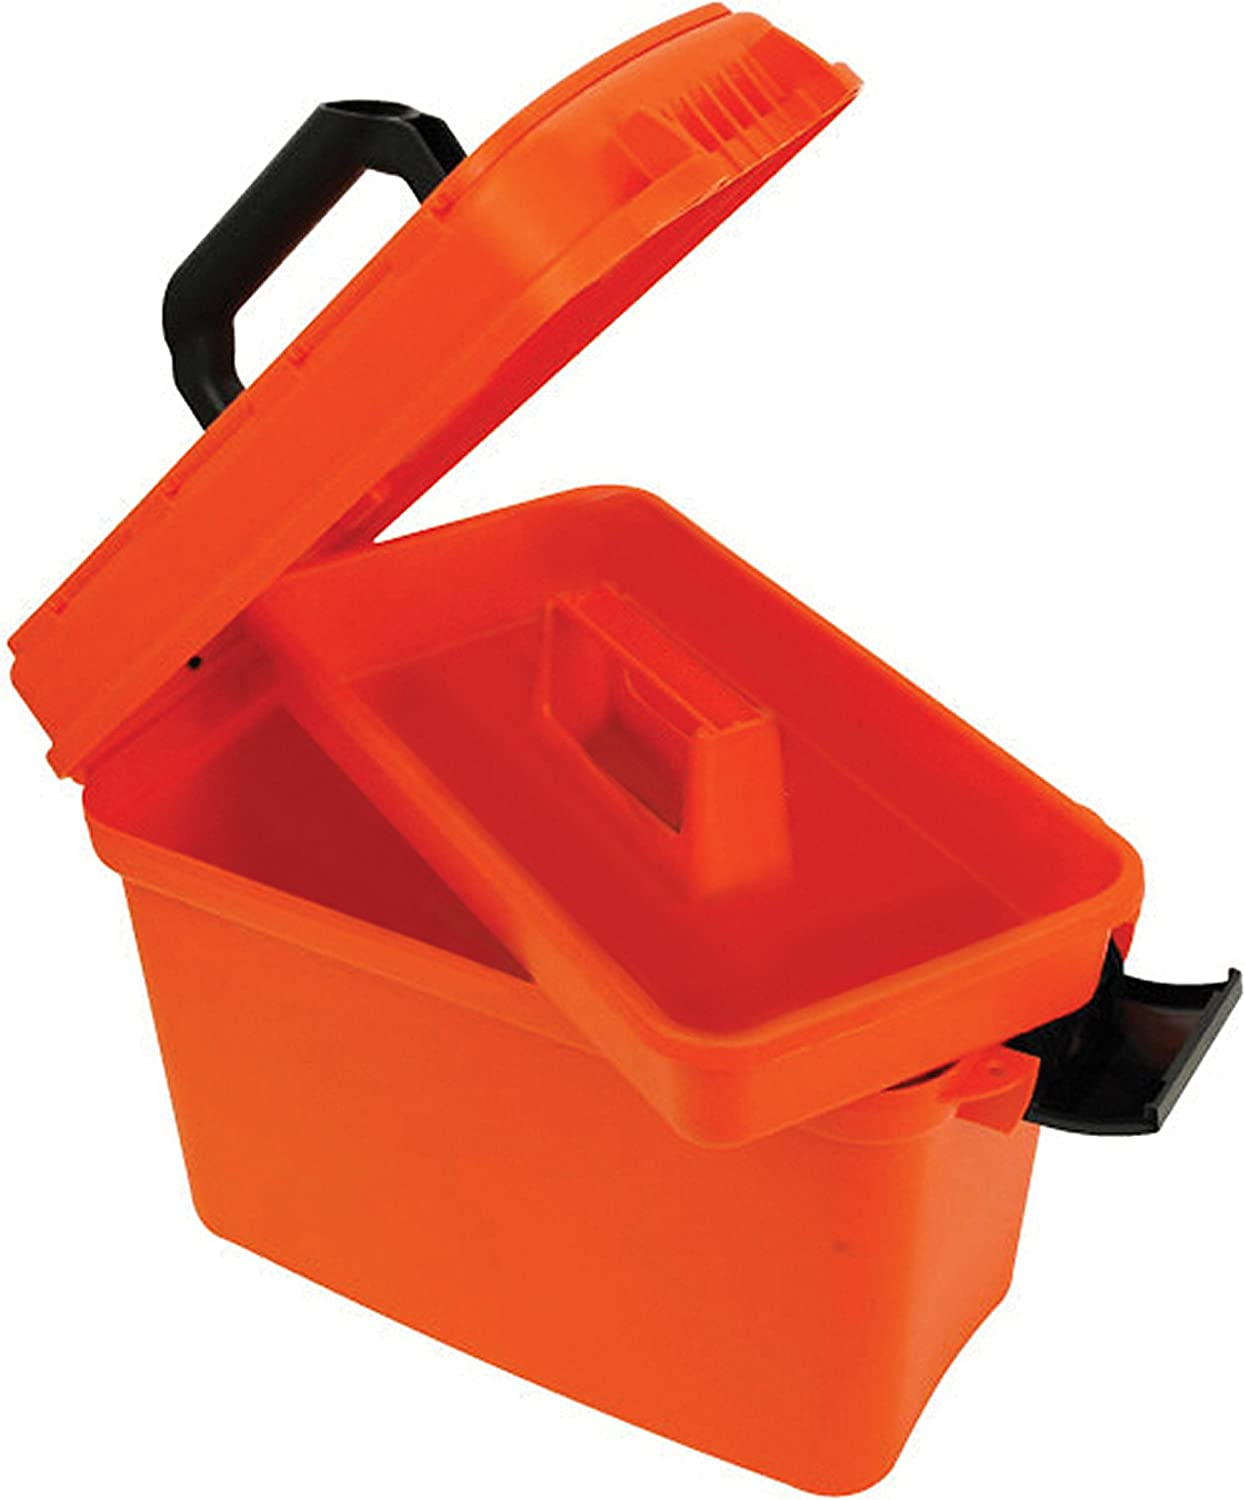 Bright Safety Orange attwood 11834-1 Waterproof Boaters Dry Box